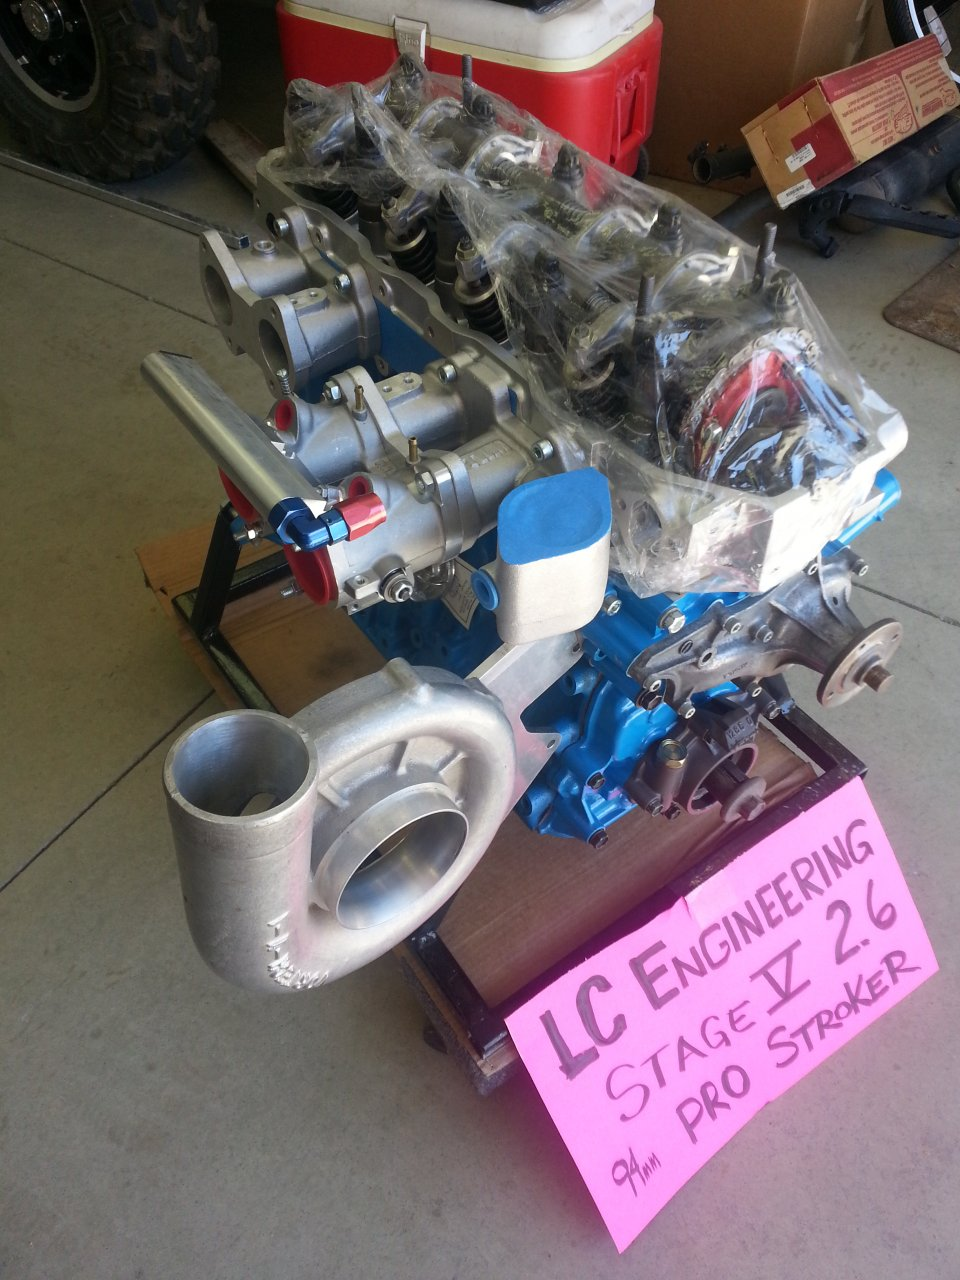 For Sale - LC Engineering 2 6 Stage 5 Pro Stroker | IH8MUD Forum